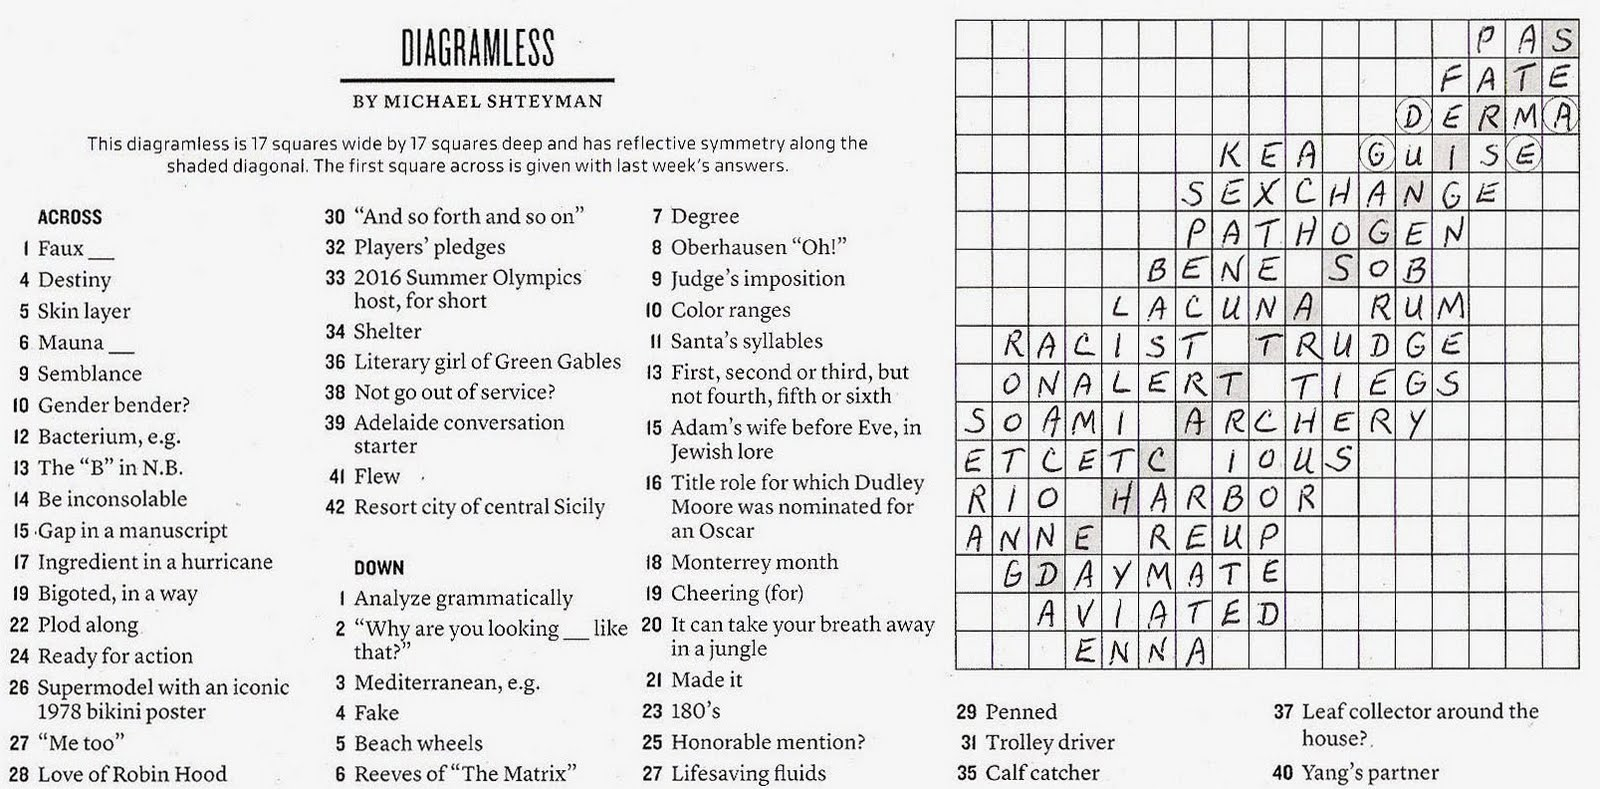 The New York Times Crossword In Gothic 06 13 10